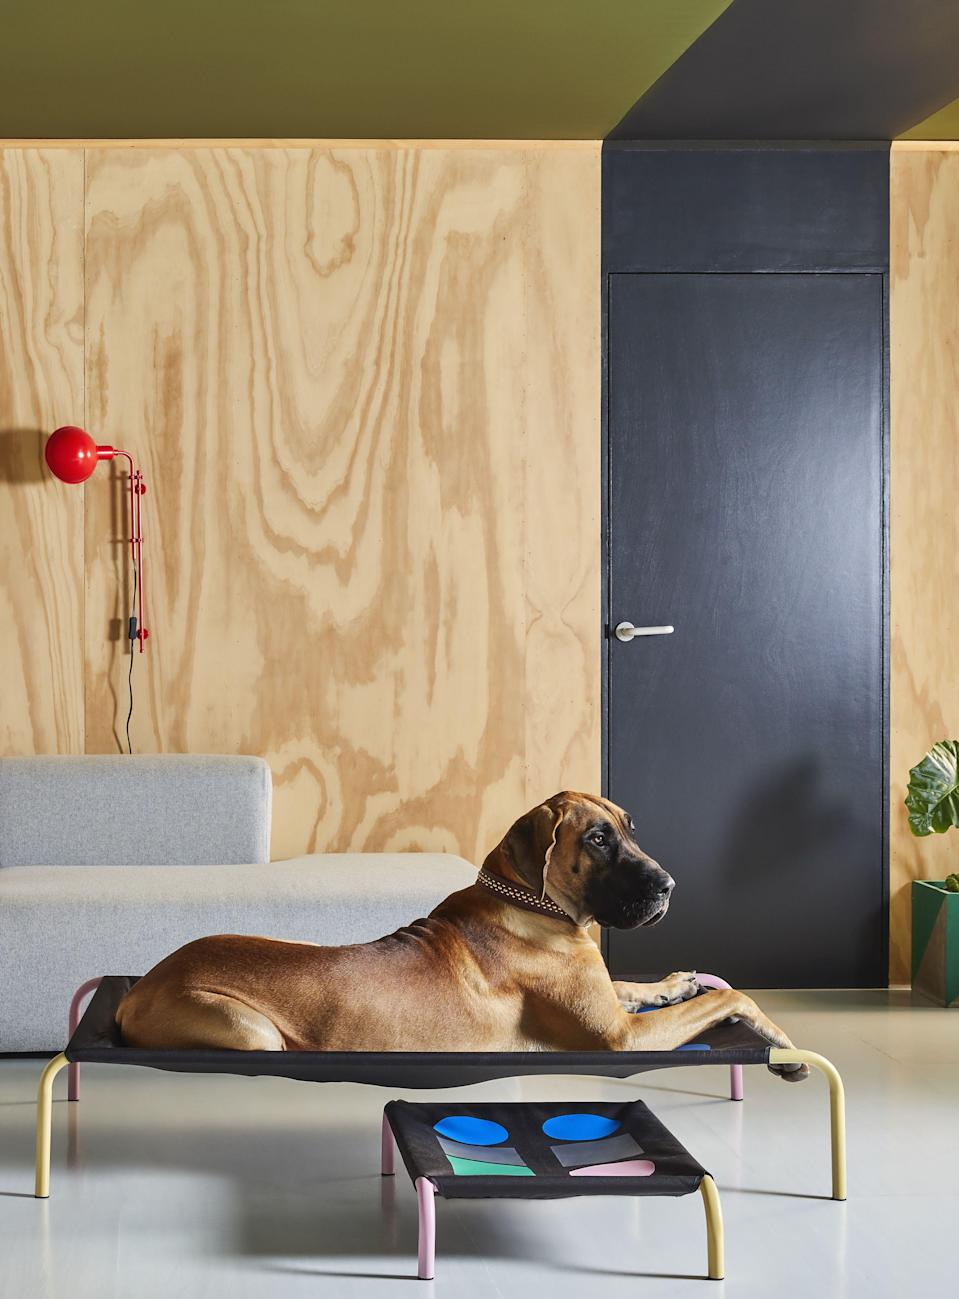 """<p class=""""body-dropcap"""">Although designer pet accessories are nothing new, there's a noticeable influx of products that are aimed squarely at those who want their animal apparatus to look at home alongside Farrow & Ball paint and Eames chairs. Browse our edit of the latest designs for pampered pets…<br></p>"""